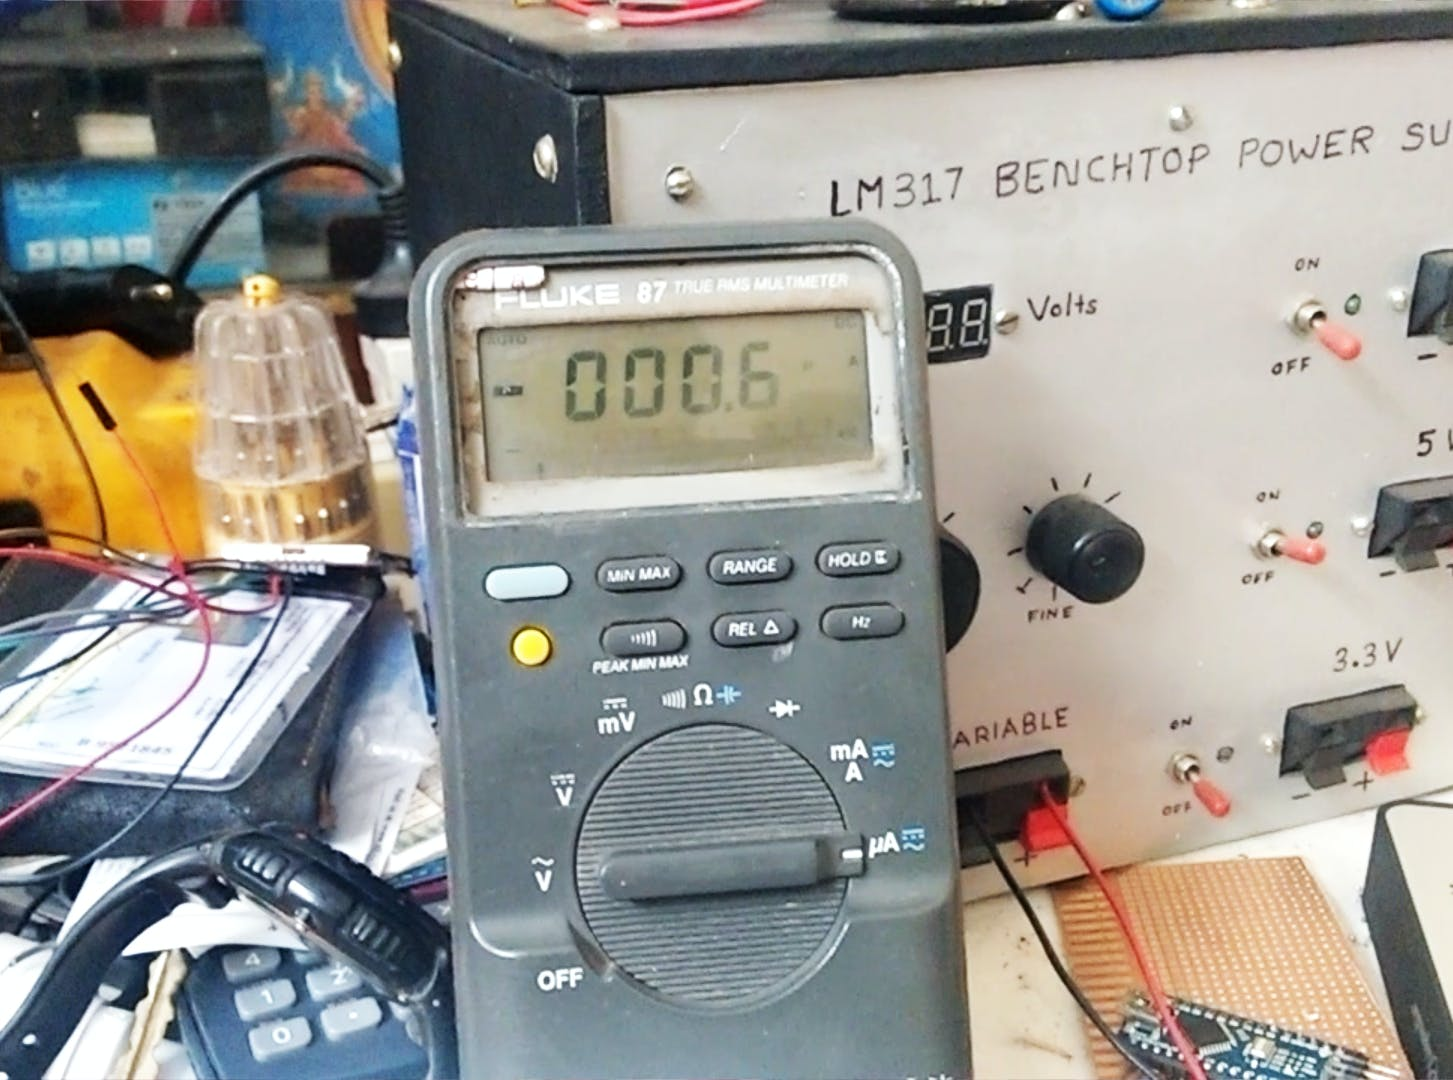 The sleep mode current of the system measured by the Fluke 87 (screenshot taken from the test video)